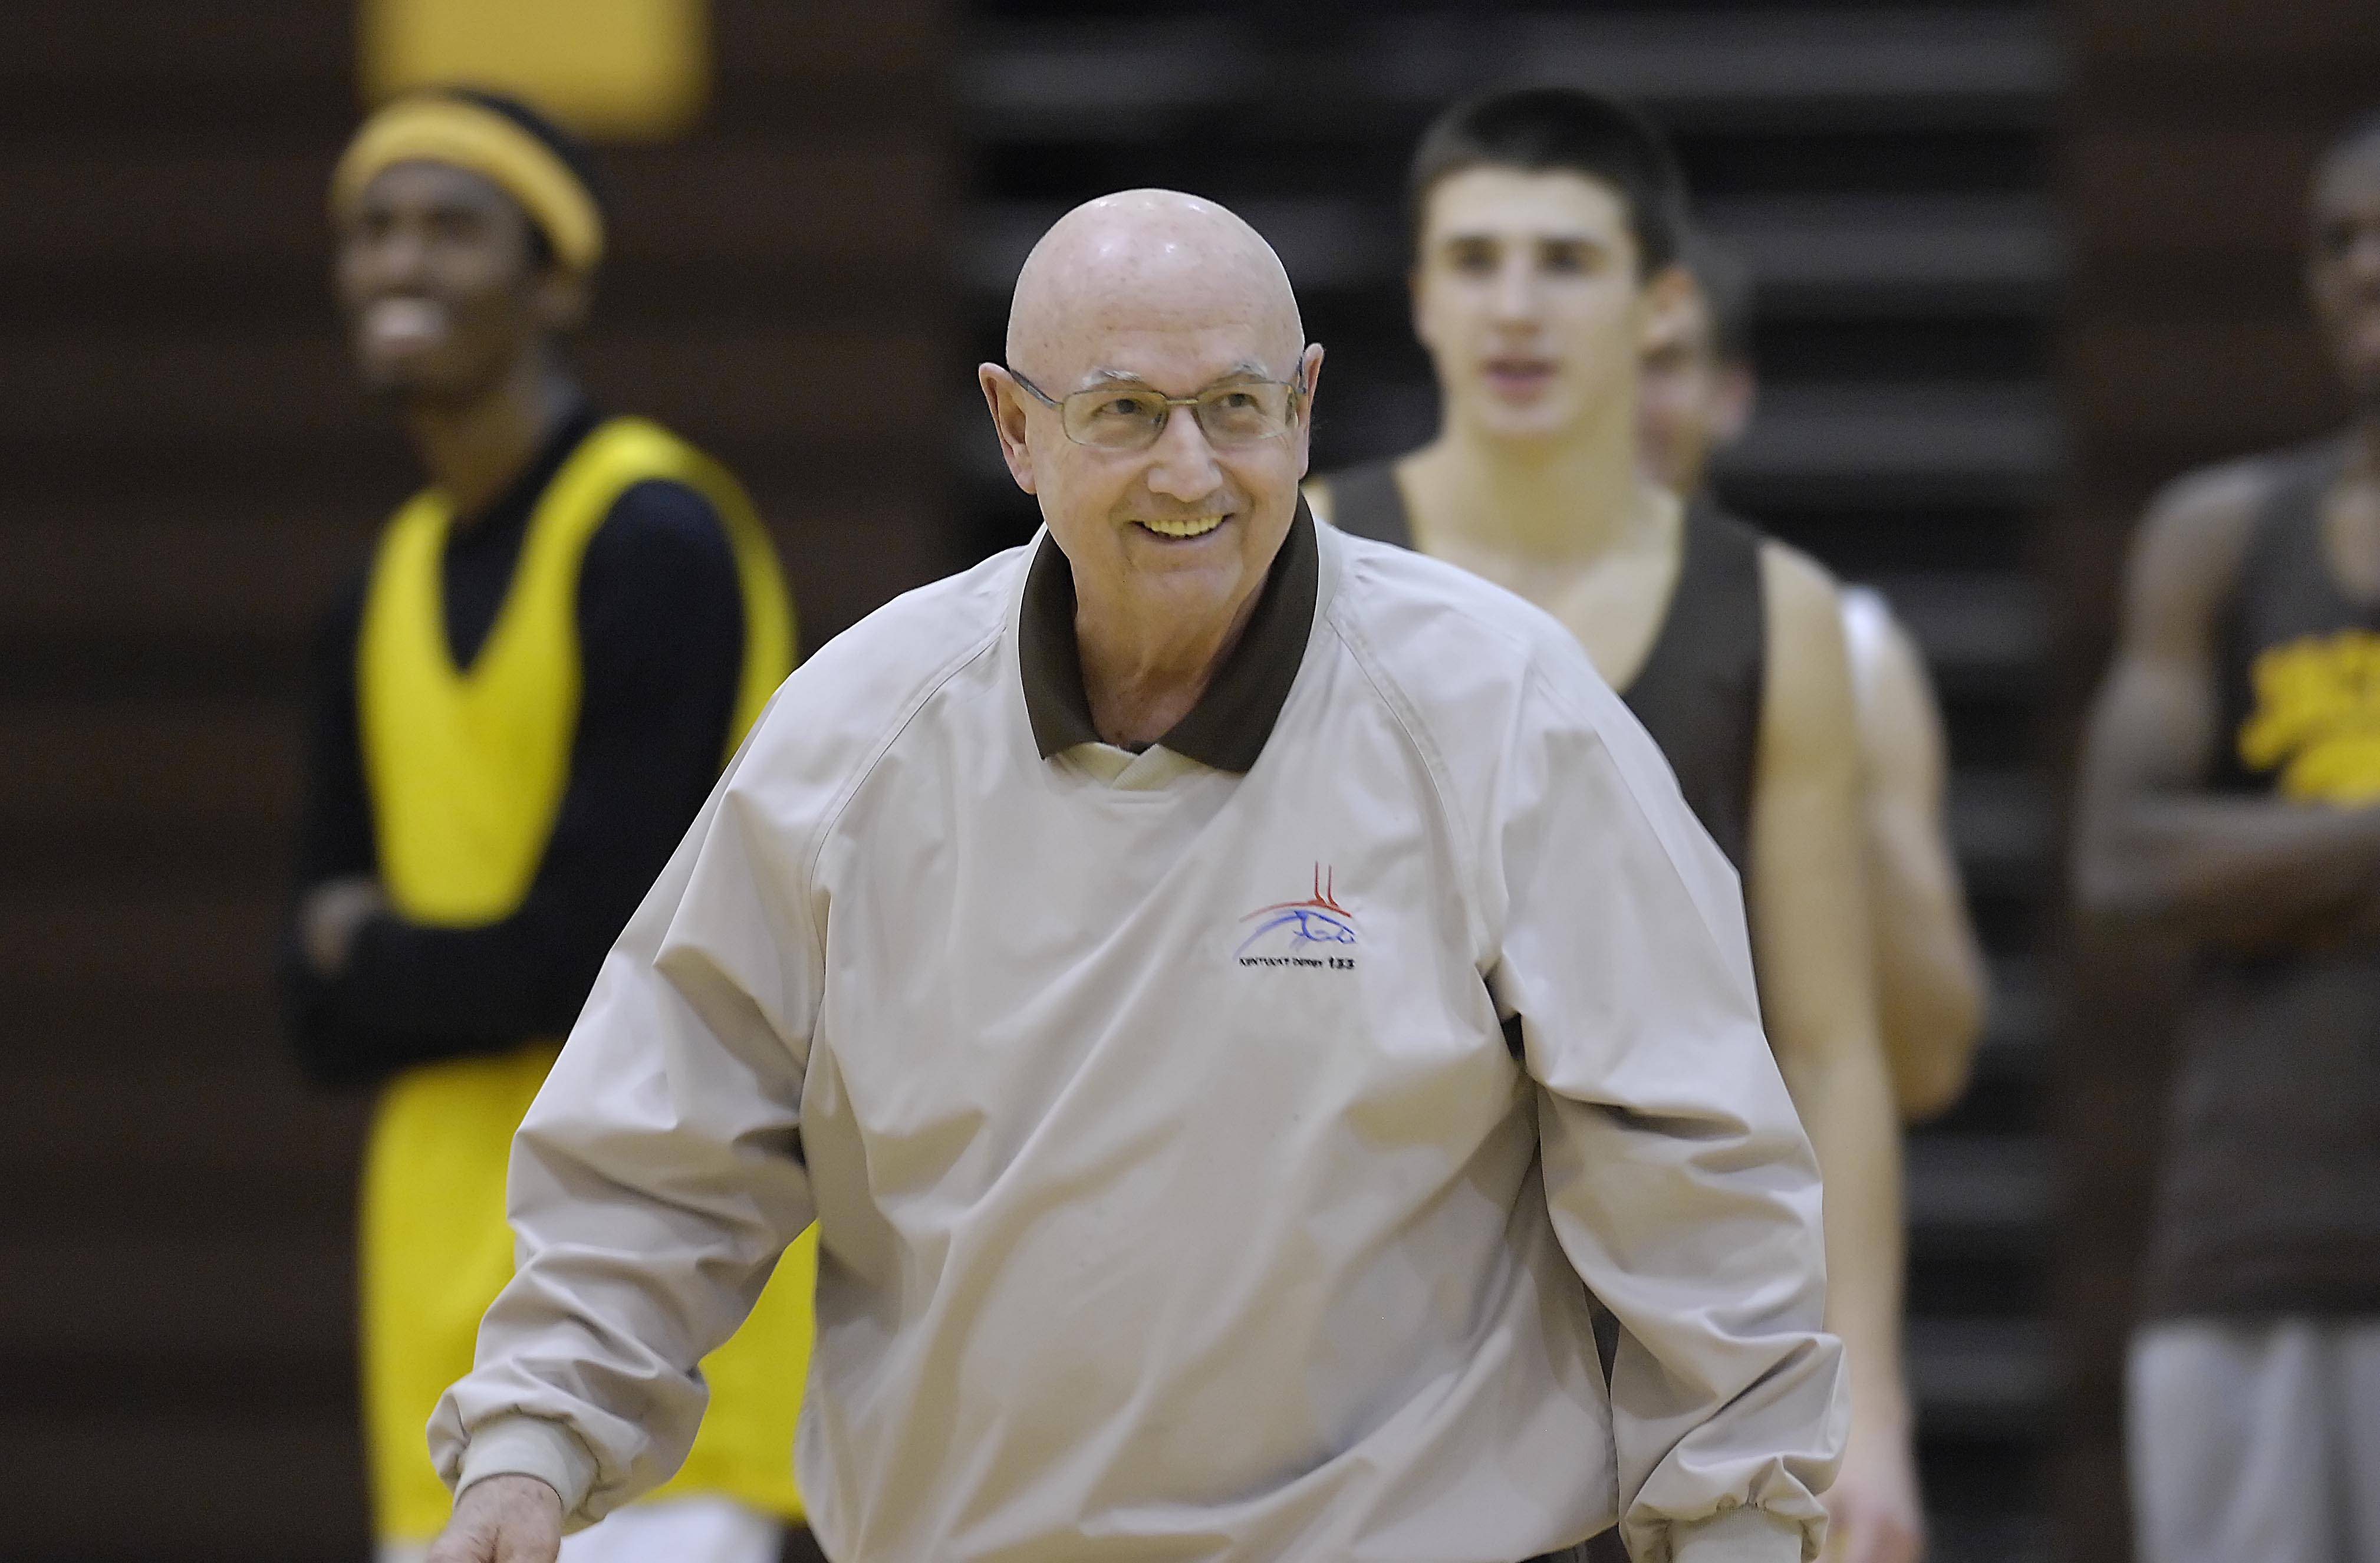 Retired Jacobs boys basketball coach Jim Hinkle will take to the bench again on May 12 when he coaches the Jacobs boys almuni team in a benefit game to be played at Dundee-Crown.